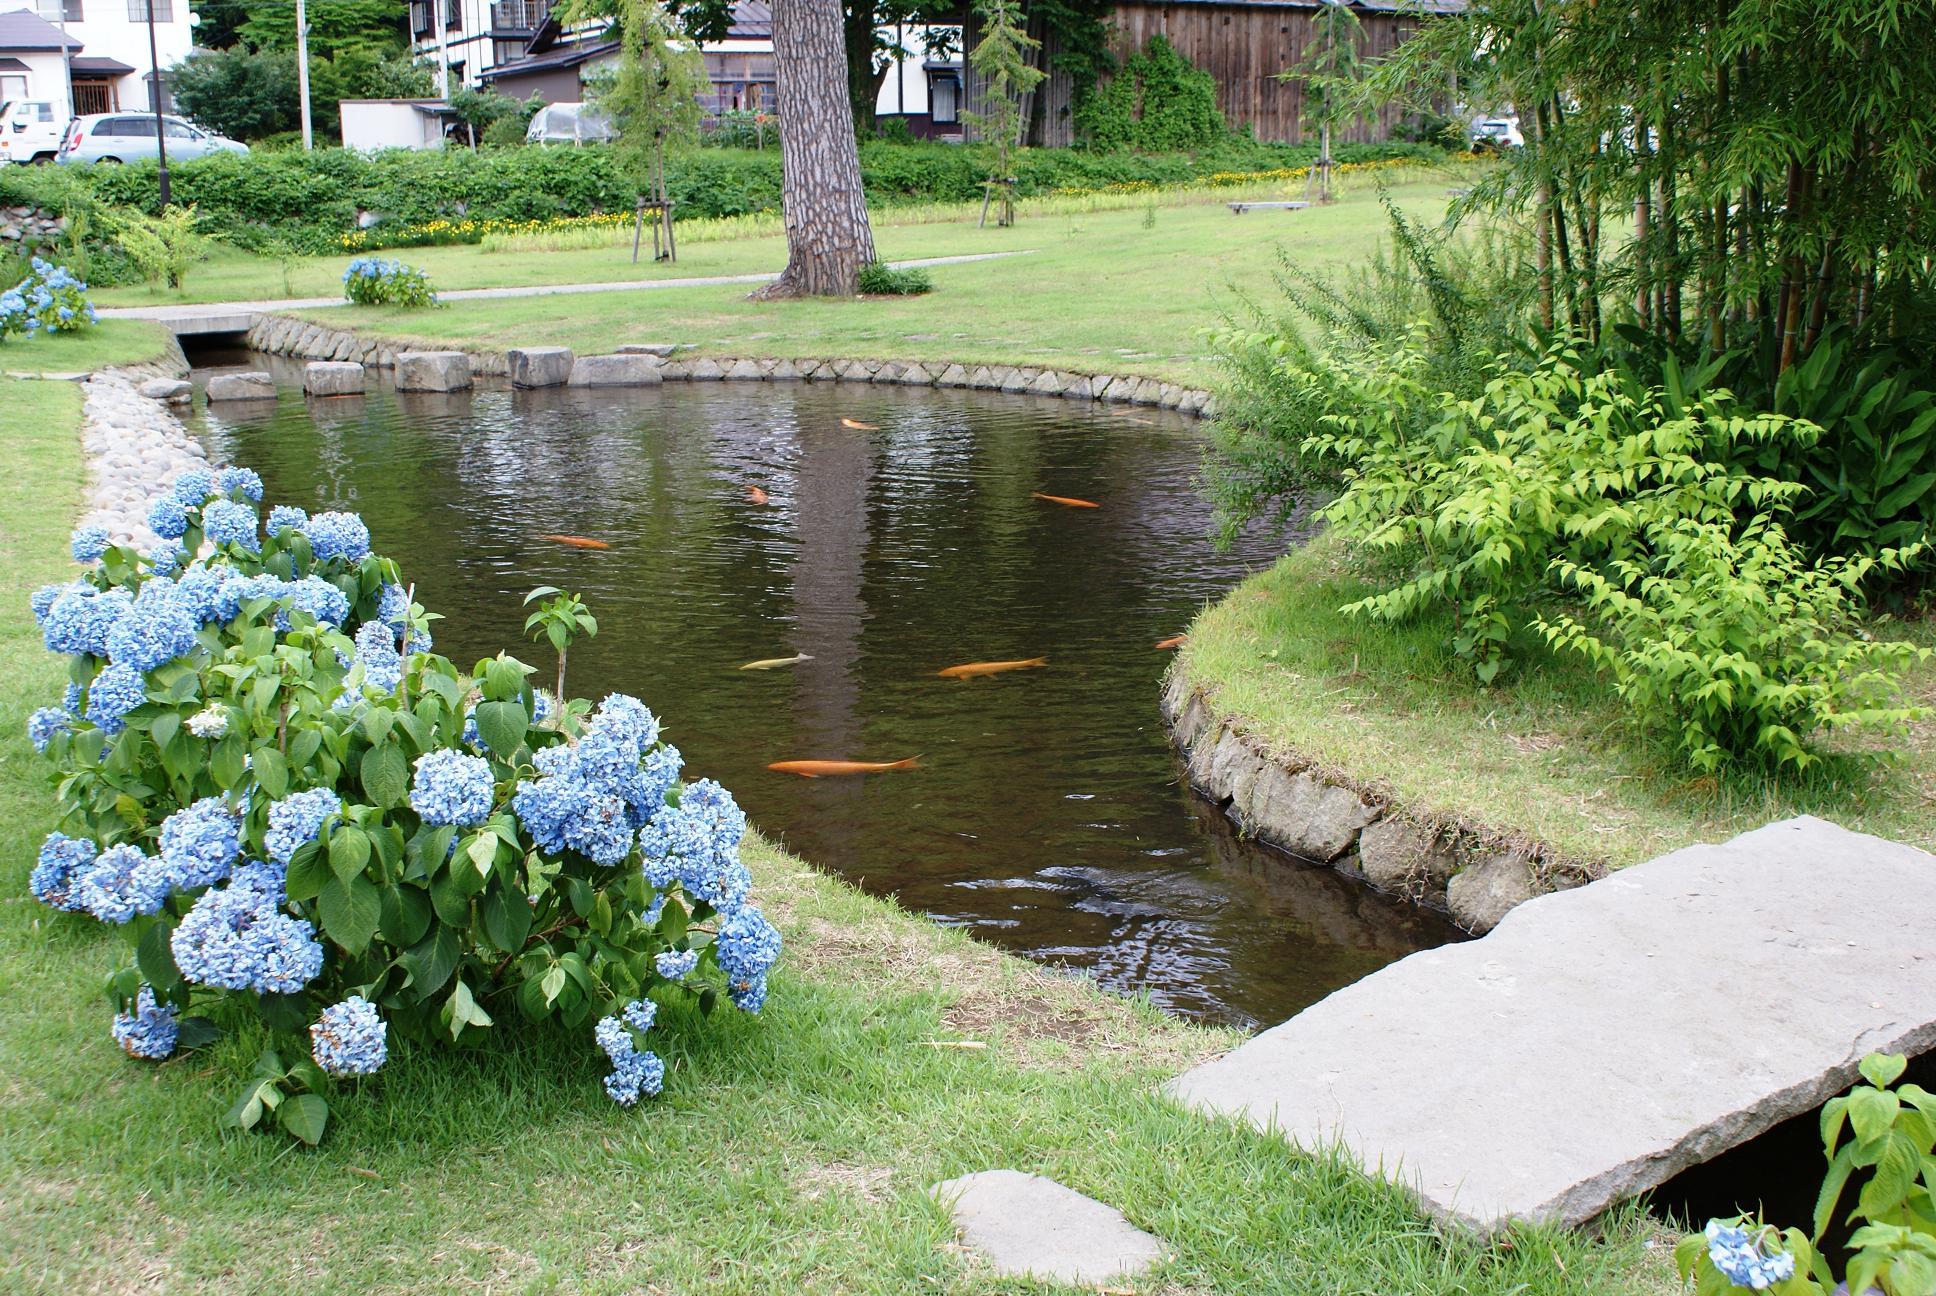 Backyard Fish Farming - Raise Fish In Your Home Pond ...